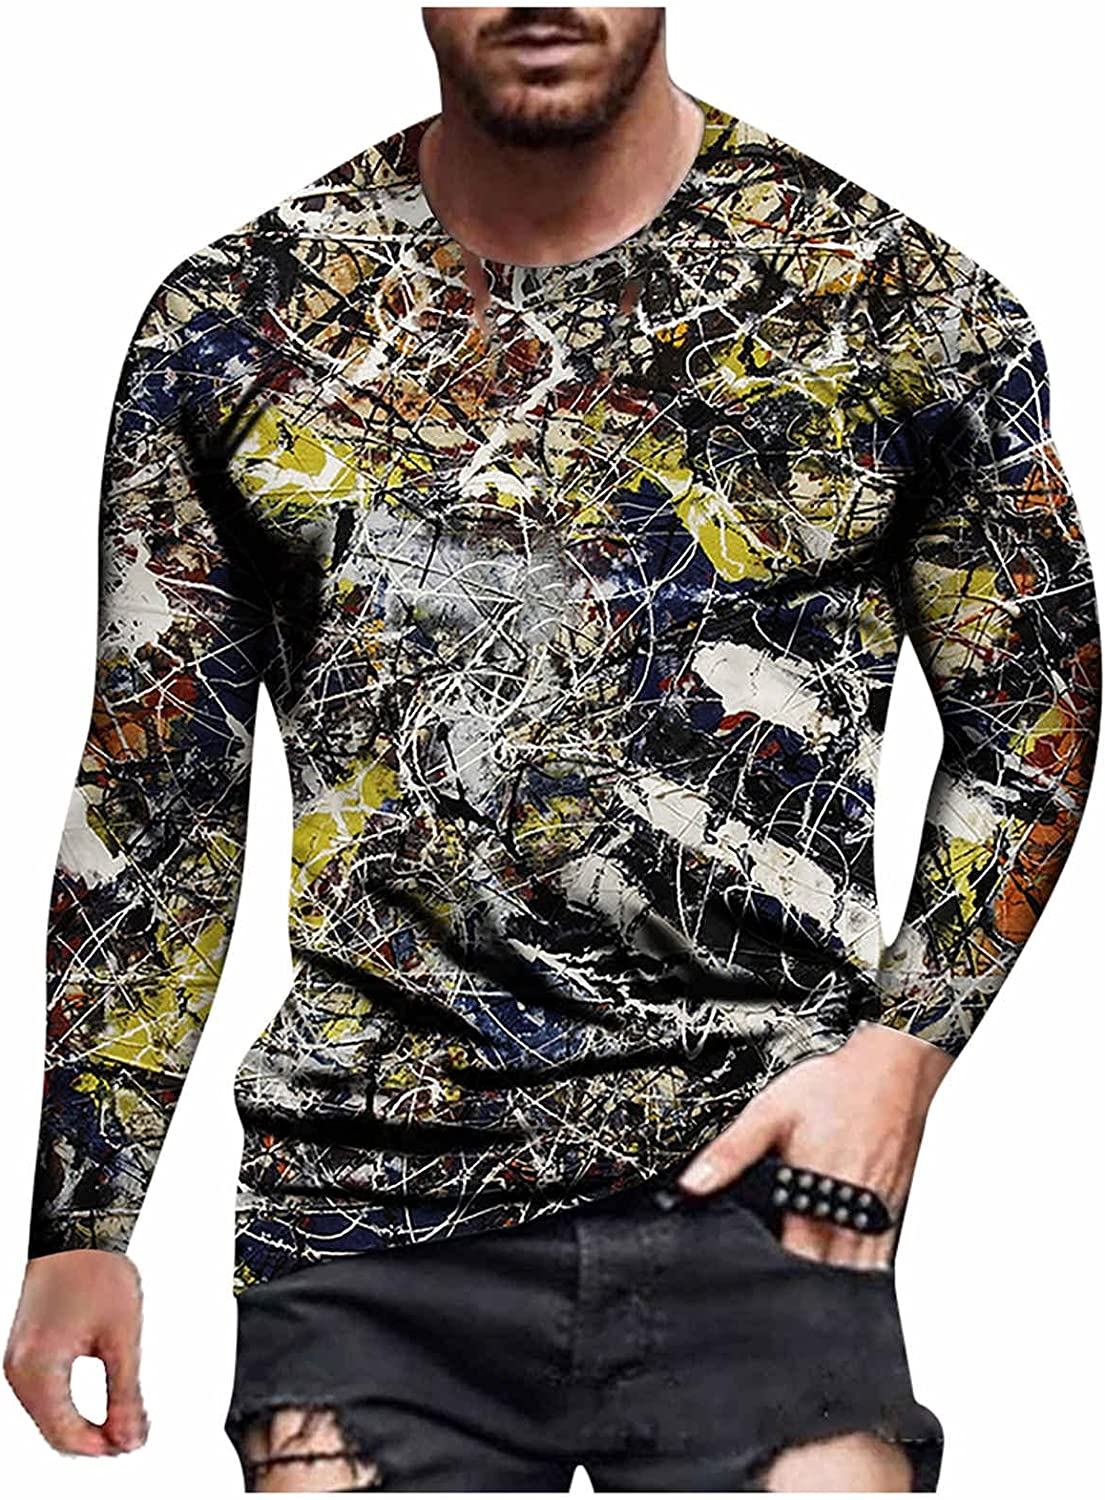 Autumn Long Sleeve for Men,Plus Size T-Shirt Retro 3D Print Workout Athletics Tops Crewneck Big and Tall Graphic Tees